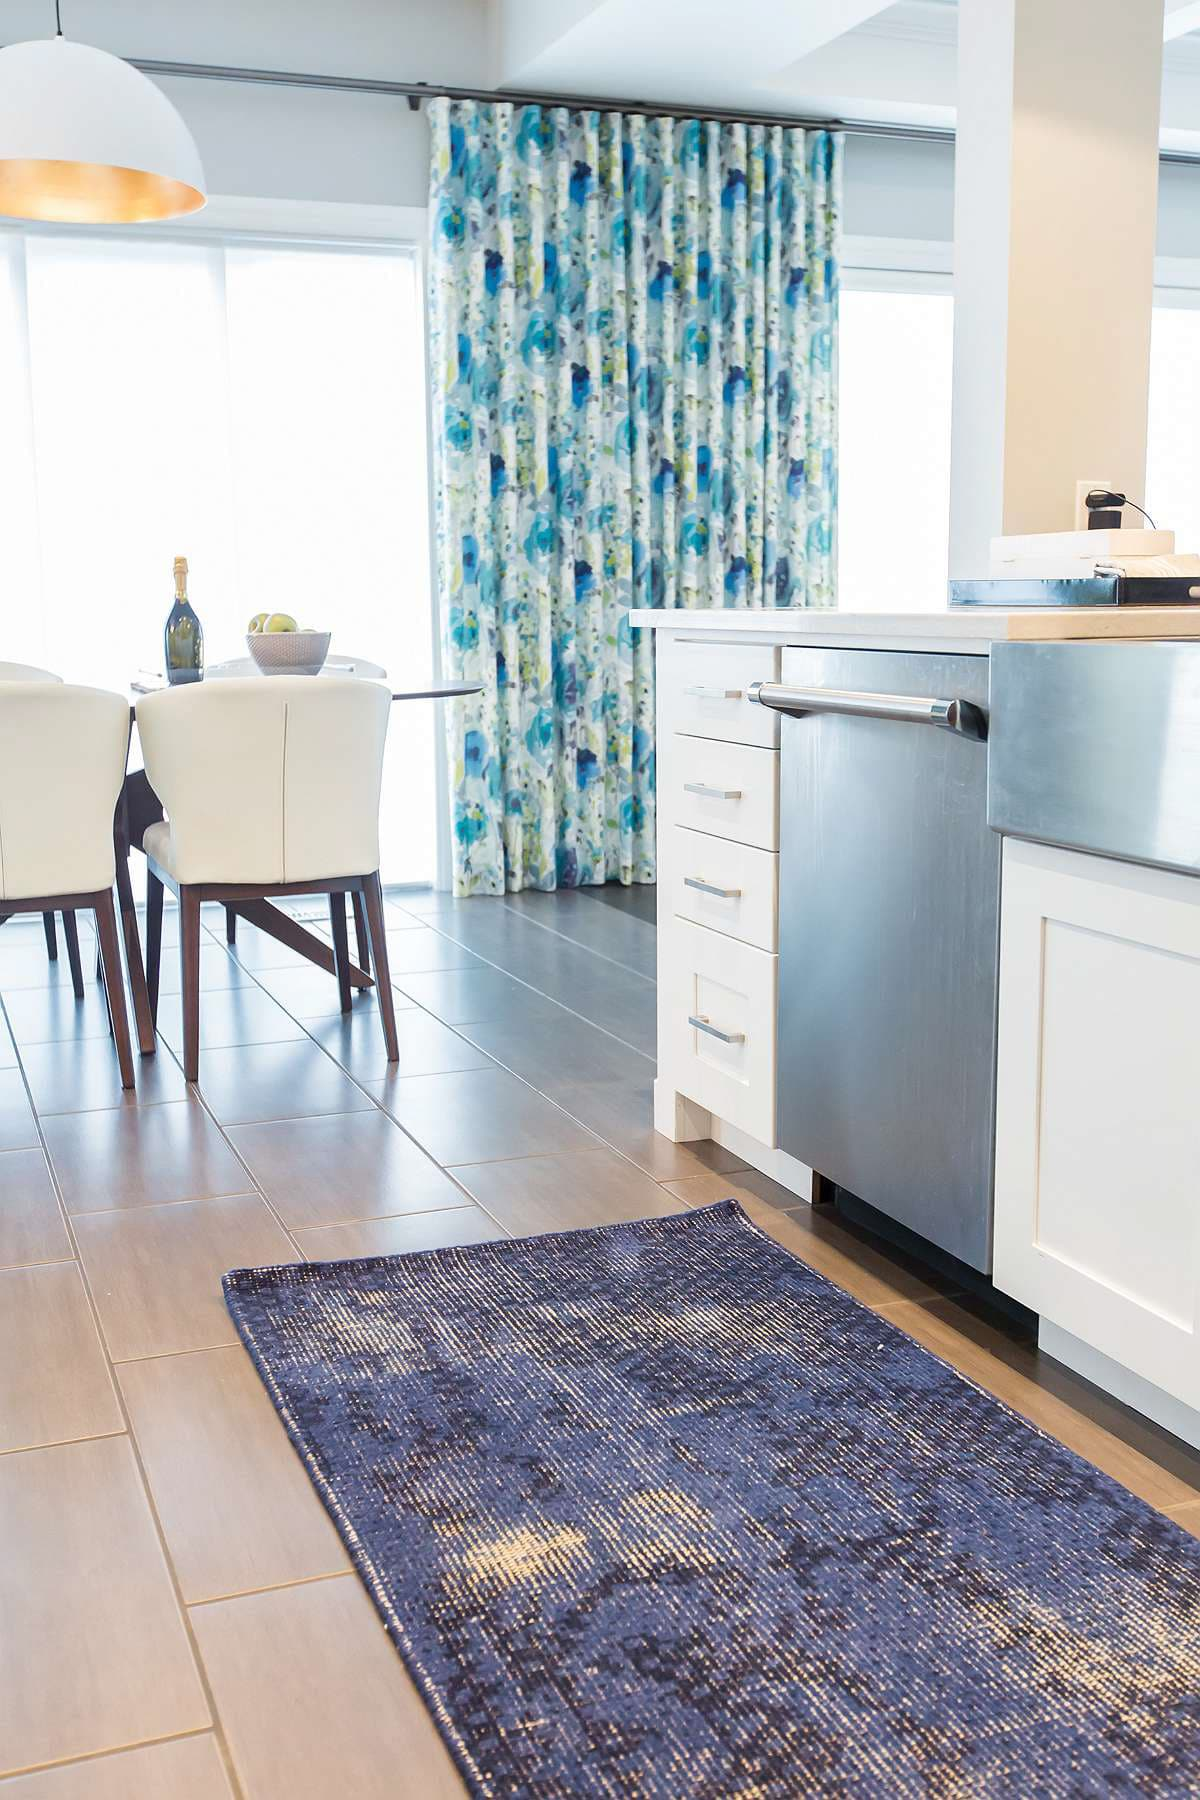 Kitchen with vintage blue and black woven rug with view of kitchen dinette and vintage Amaya drapes in blue, green and yellow floral pattern